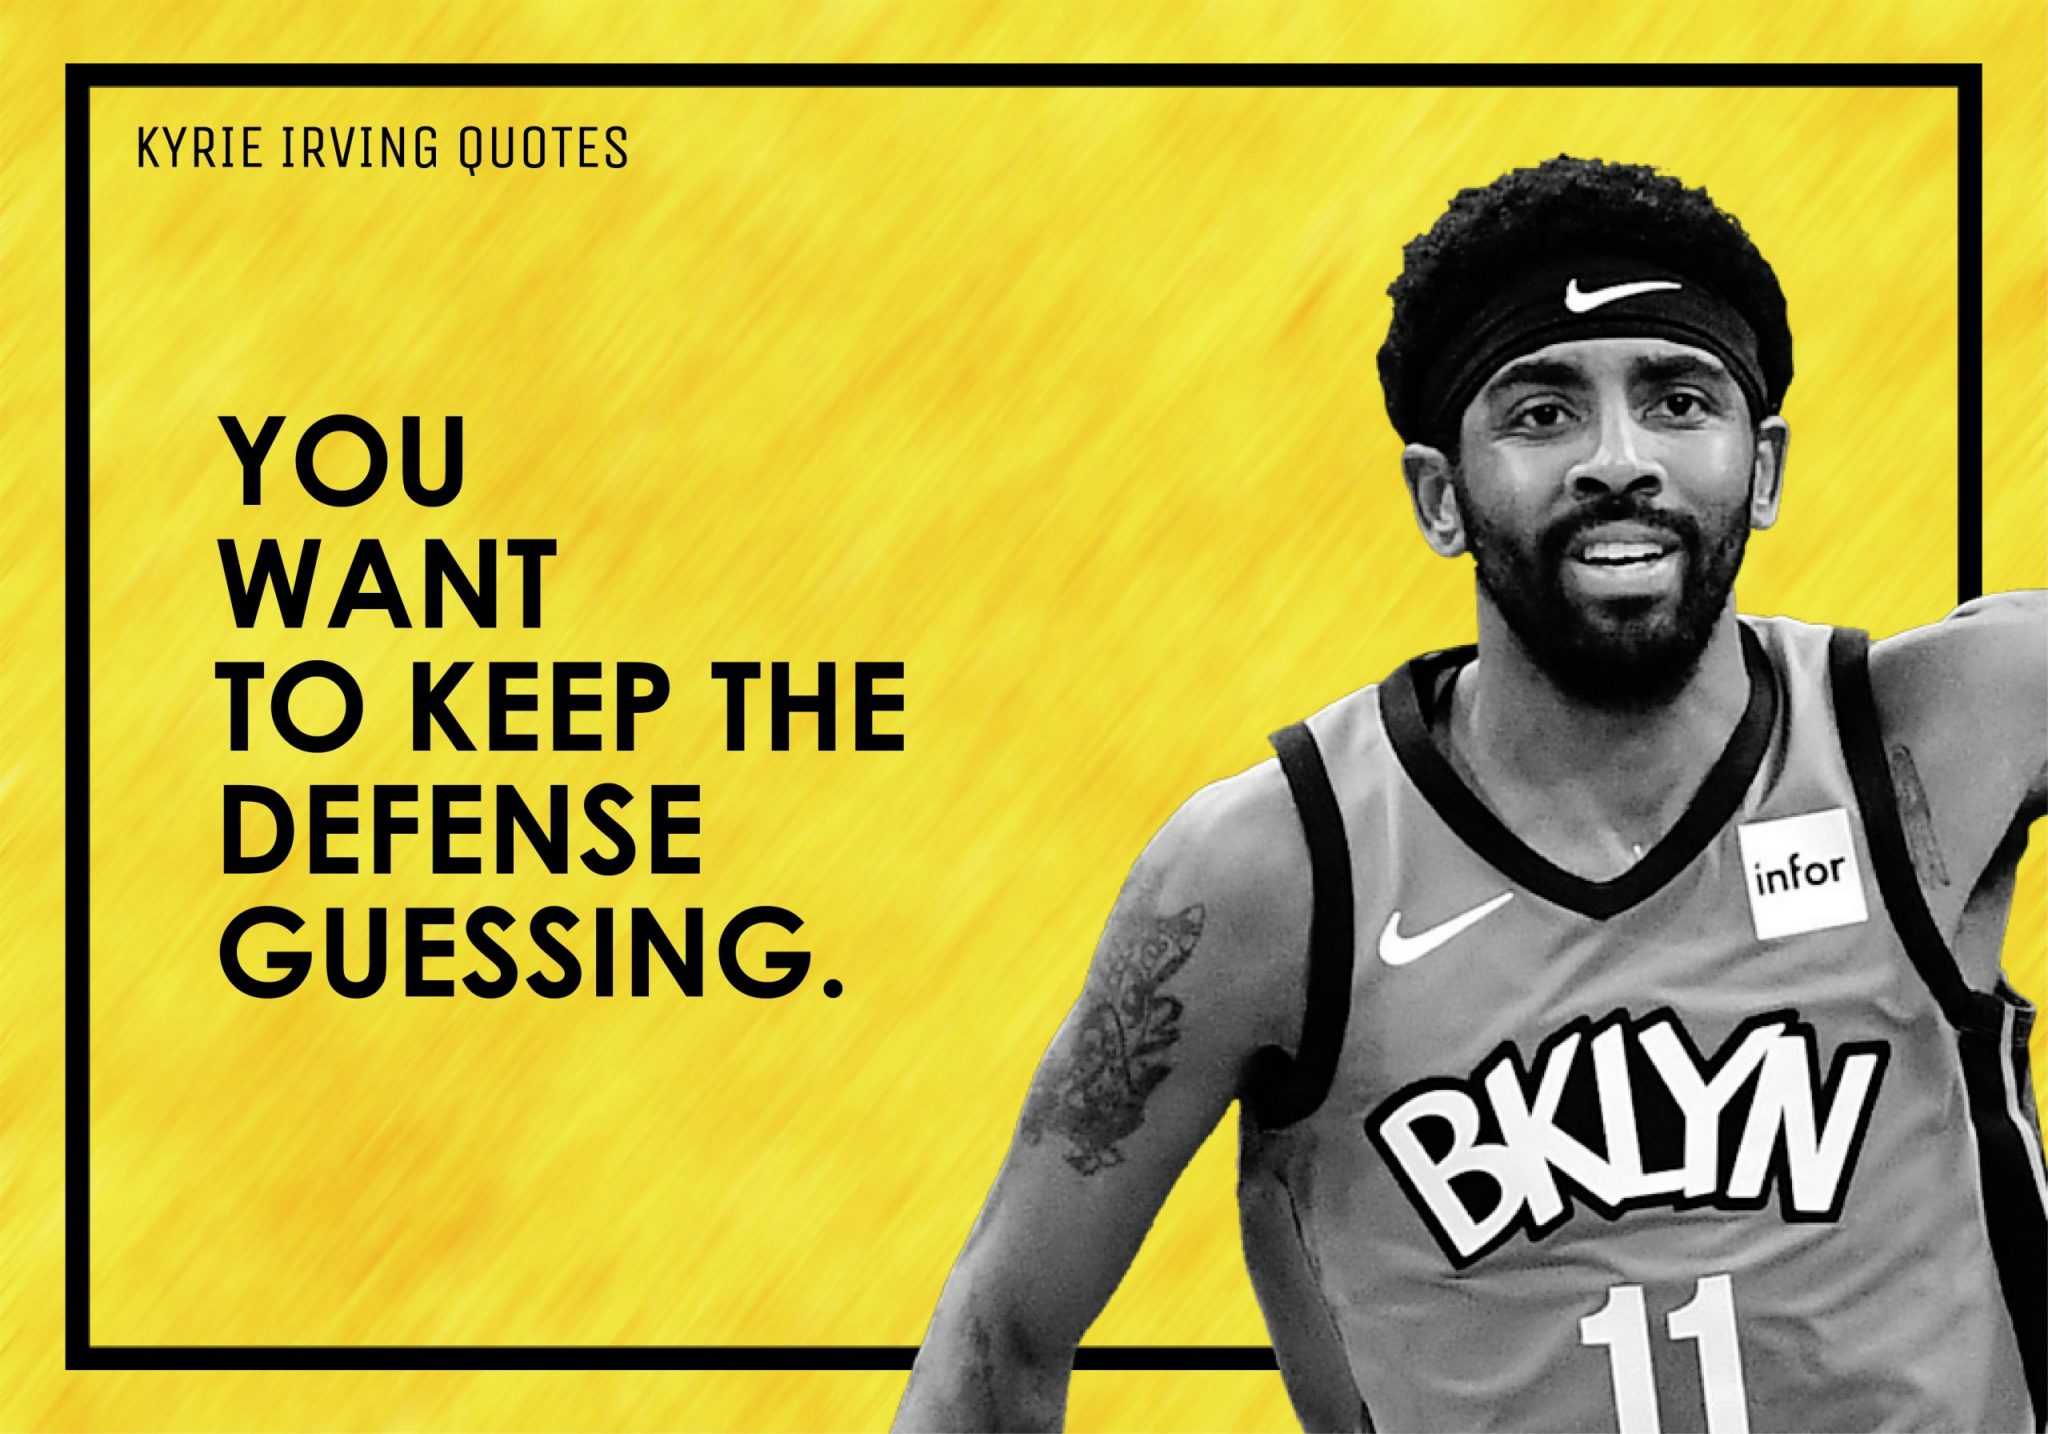 Kyrie Irving Quotes (13)